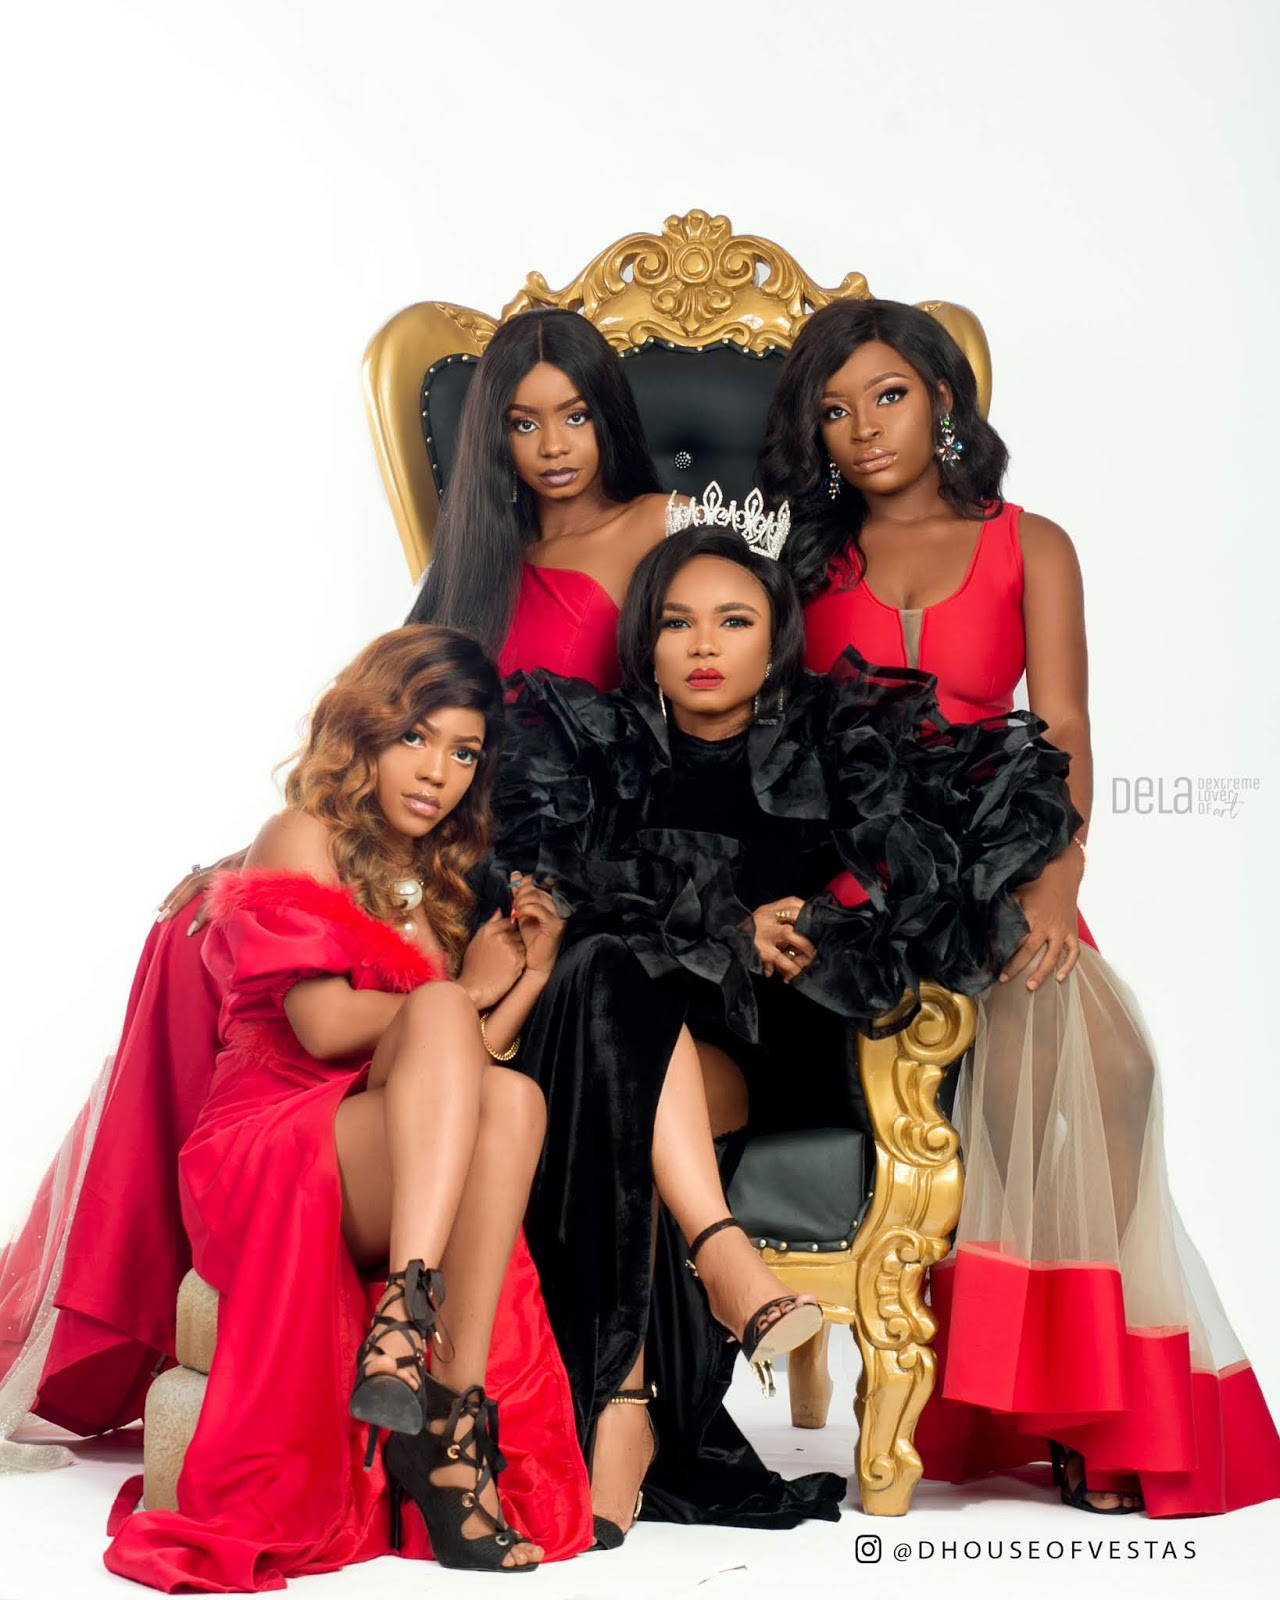 House Of Vestas THE LIONESS AND HER CUBS Featuring Actress Iyabo Ojo Priscilla Ojo Miss Lucy Thacutegemini